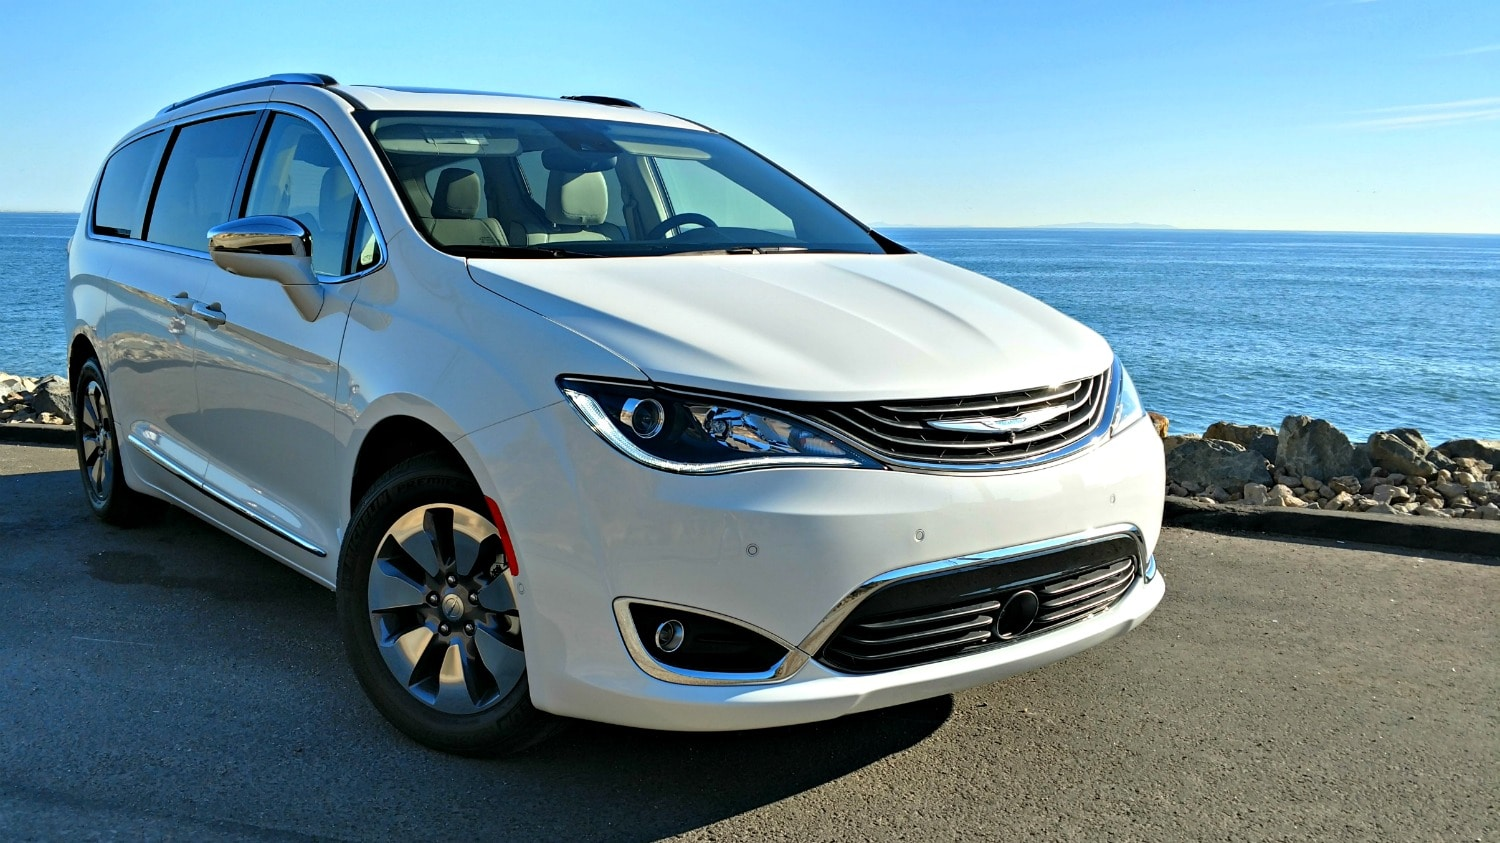 2017 chrysler pacifica hybrid the minivan you 39 ve been waiting for focus daily news. Black Bedroom Furniture Sets. Home Design Ideas